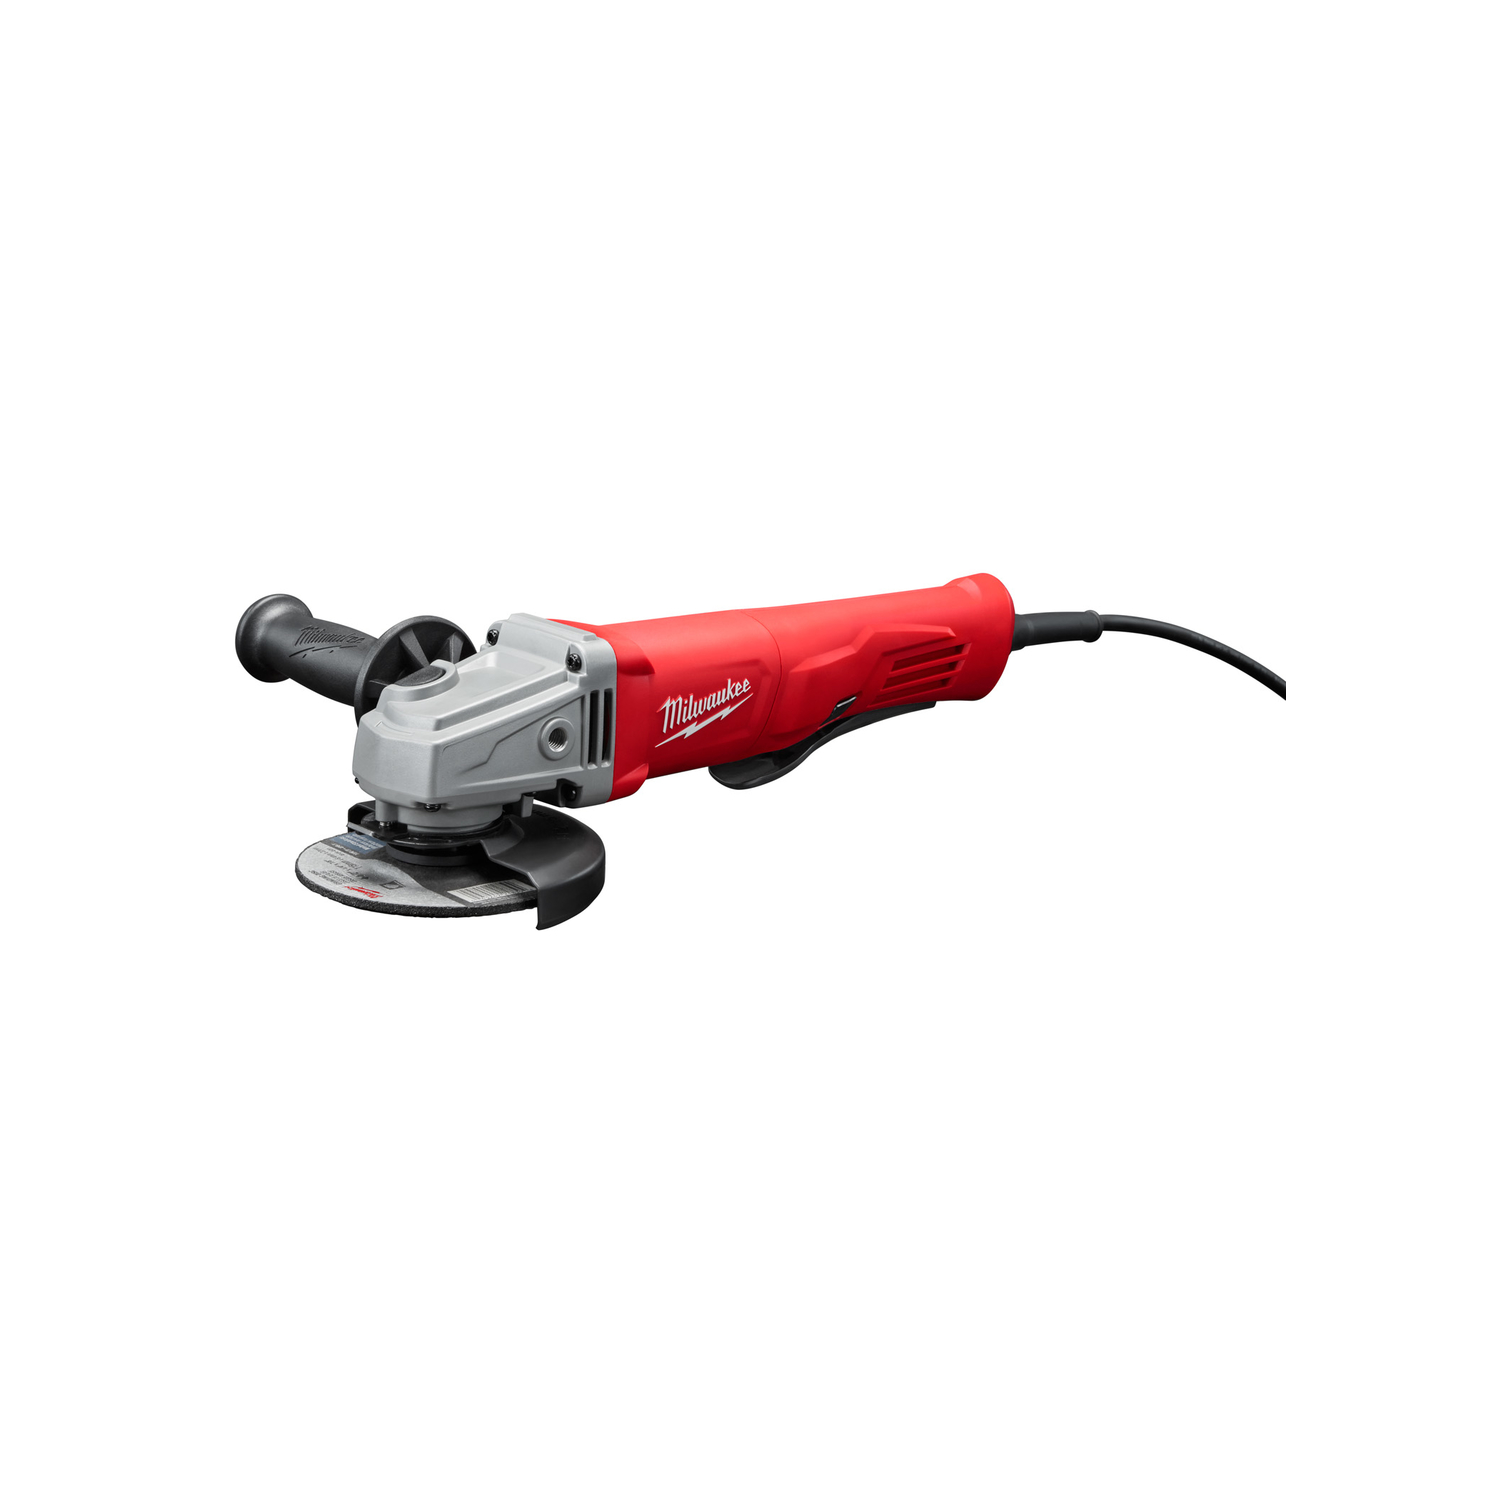 Milwaukee  4-1/2 in. 120 volt Corded  Straight Handle  11 amps Angle Grinder  11000 rpm